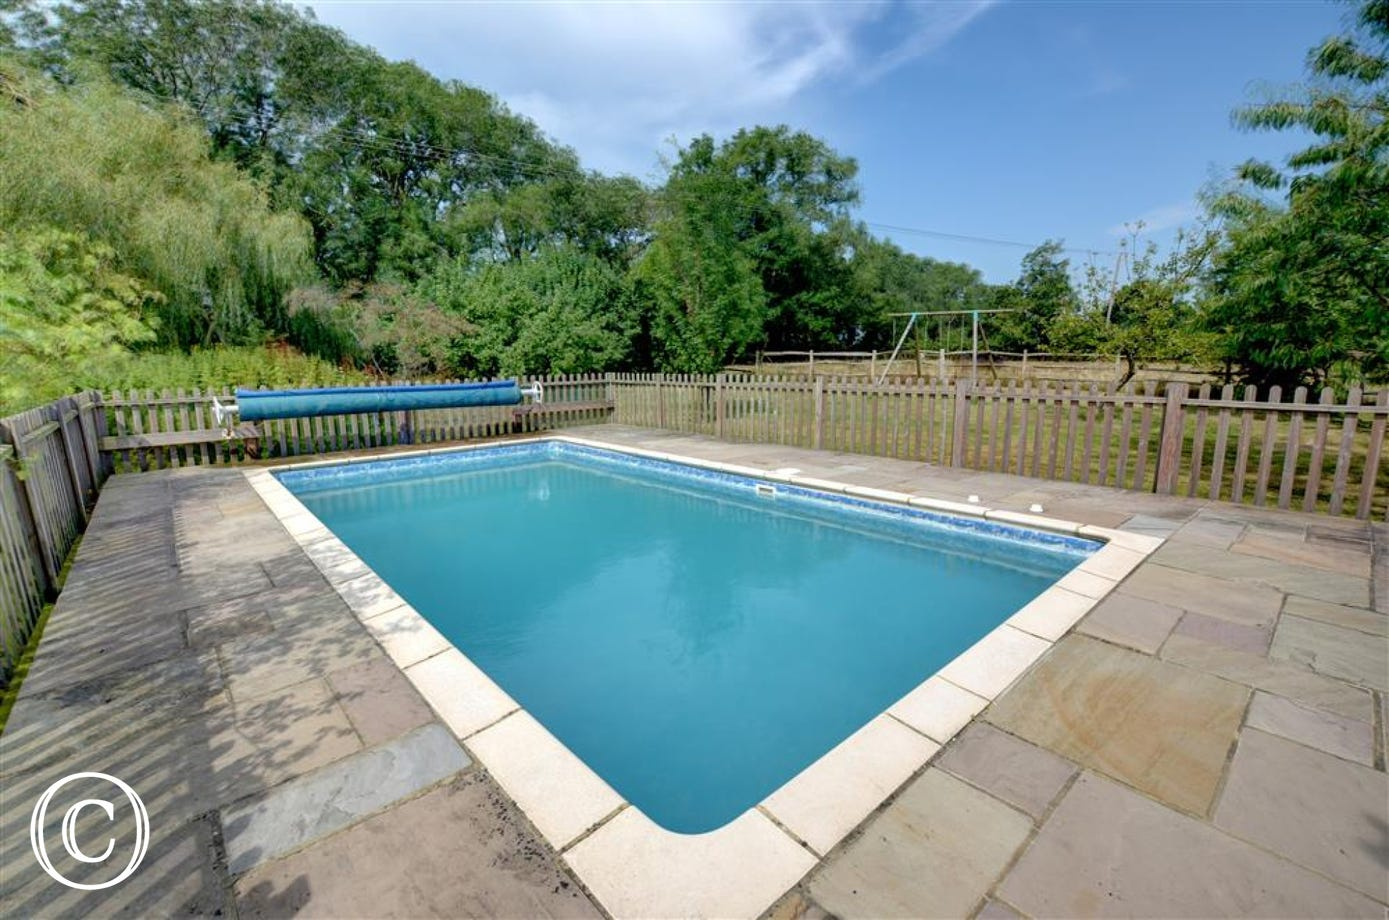 Owners pool can be used for guests.